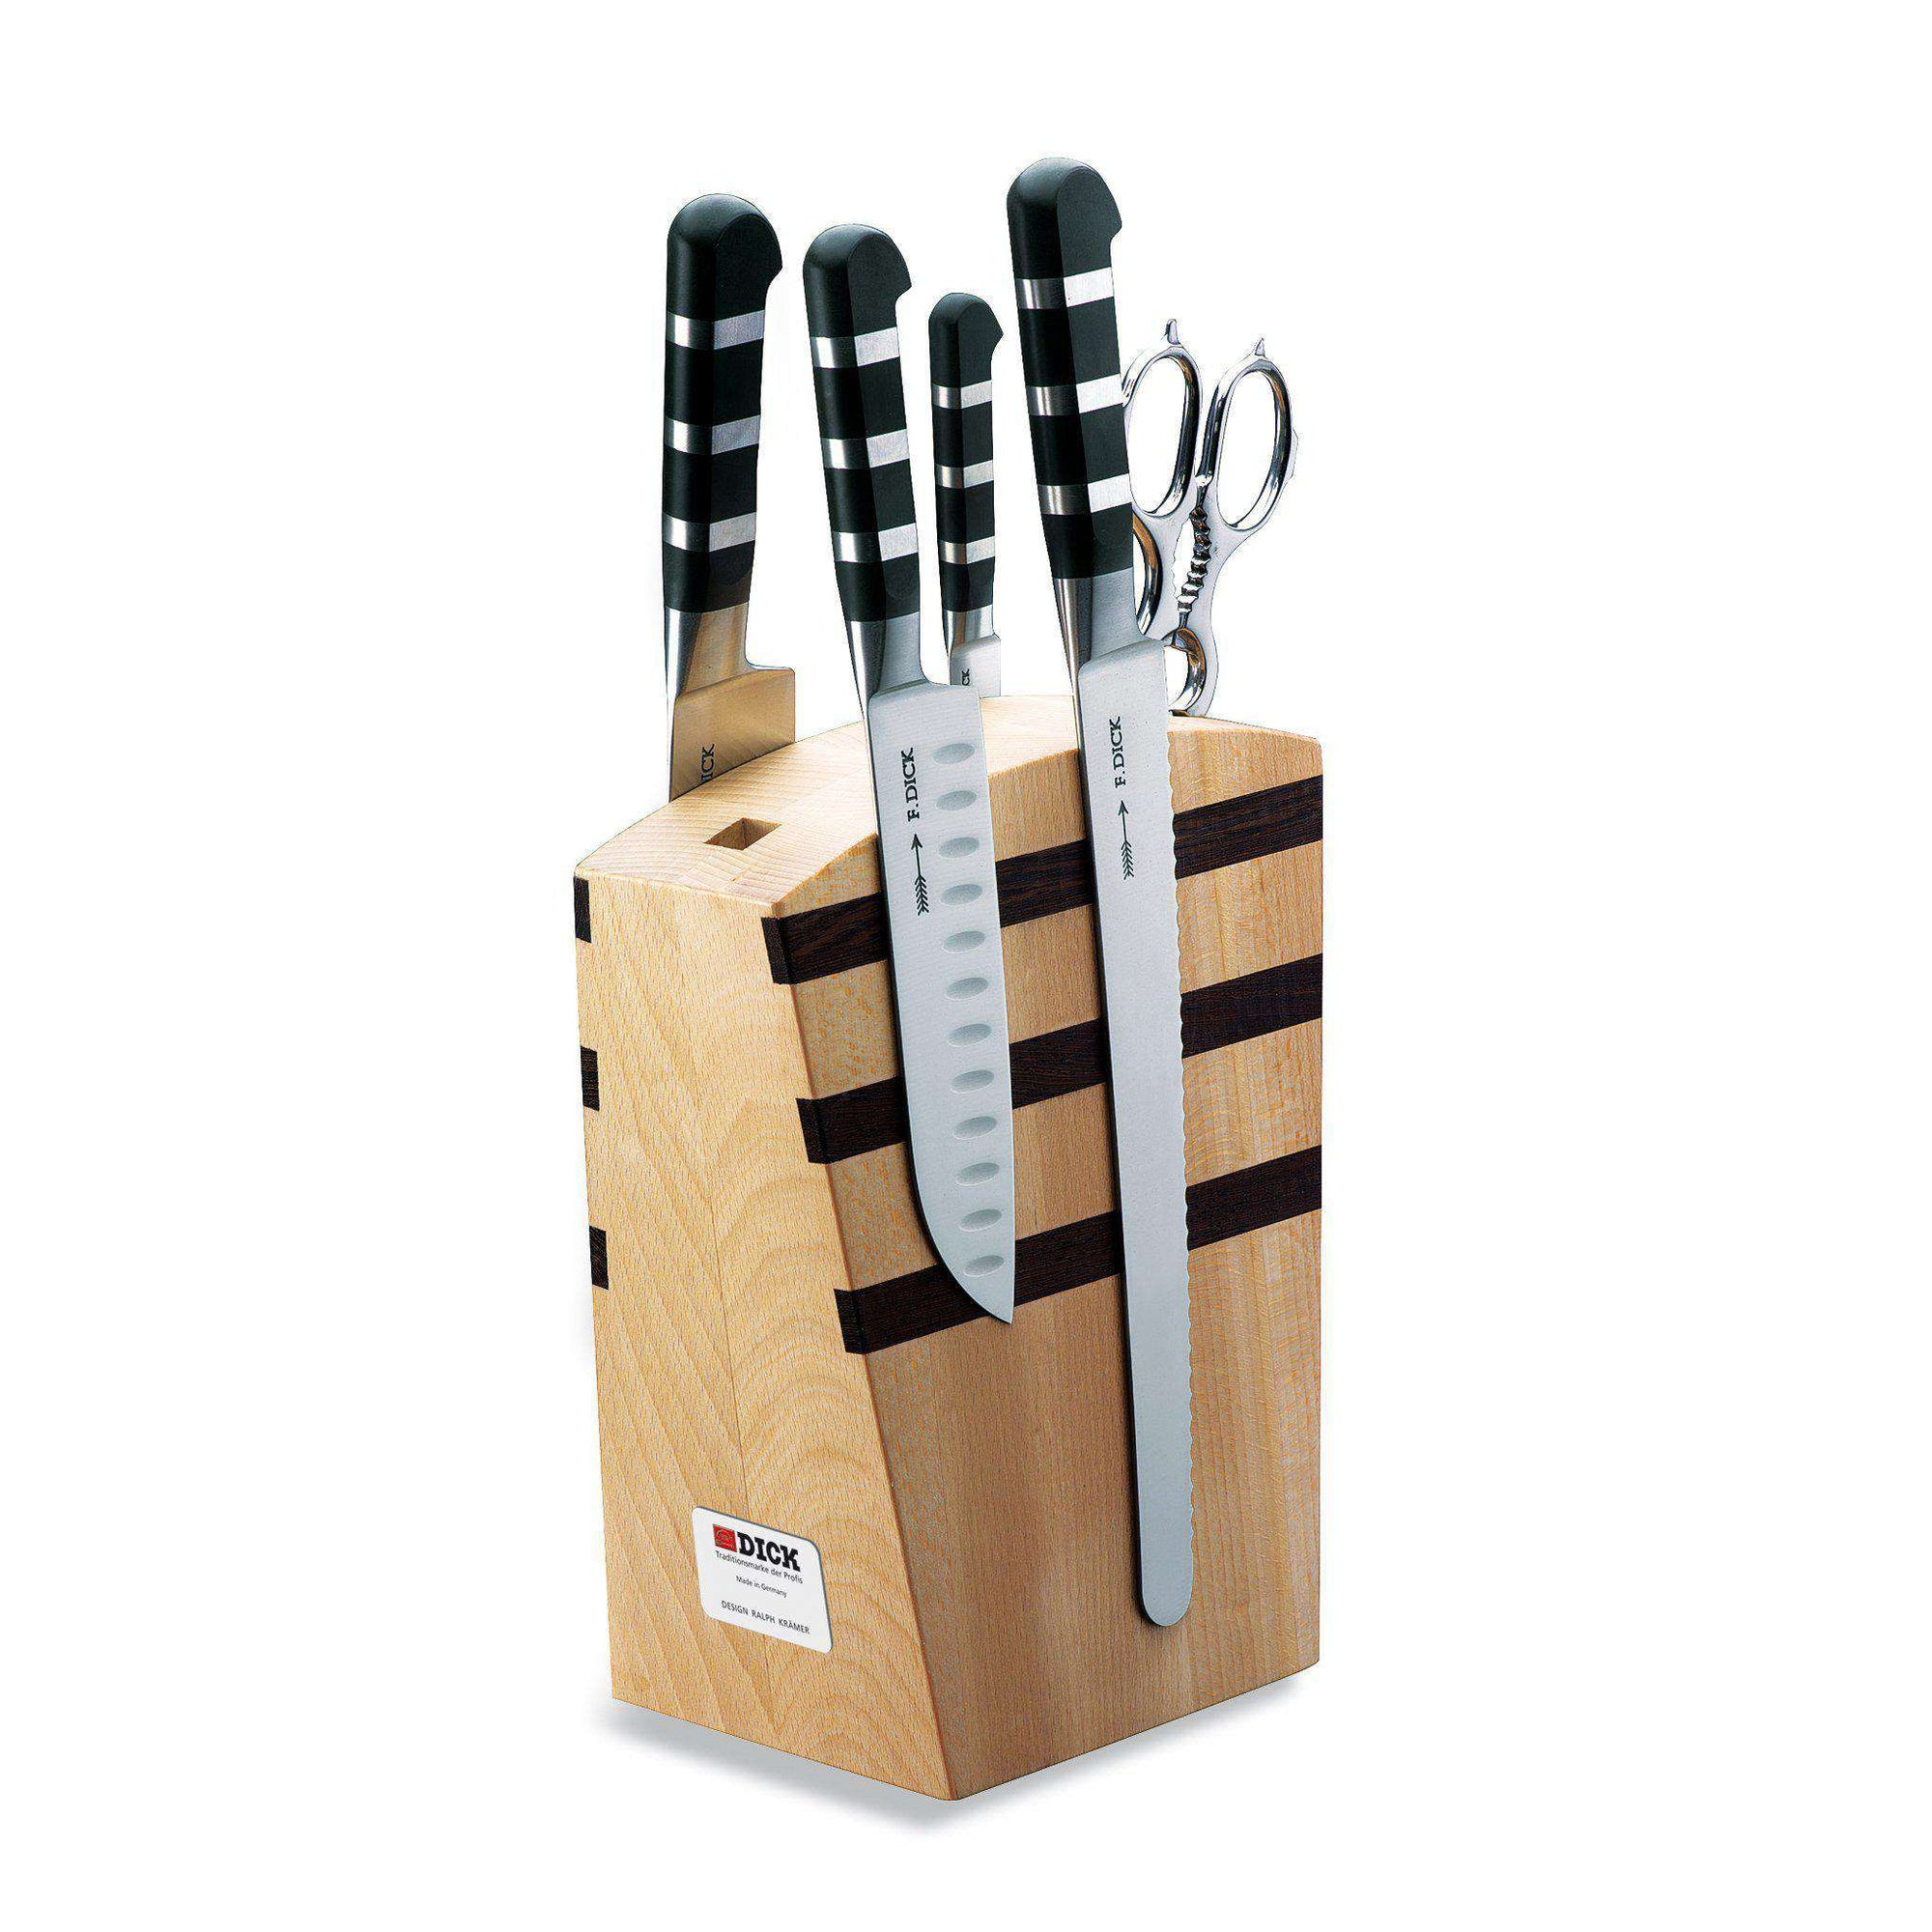 F. DICK 1905系列磁性木刀架5 Pc Set- House of Knives